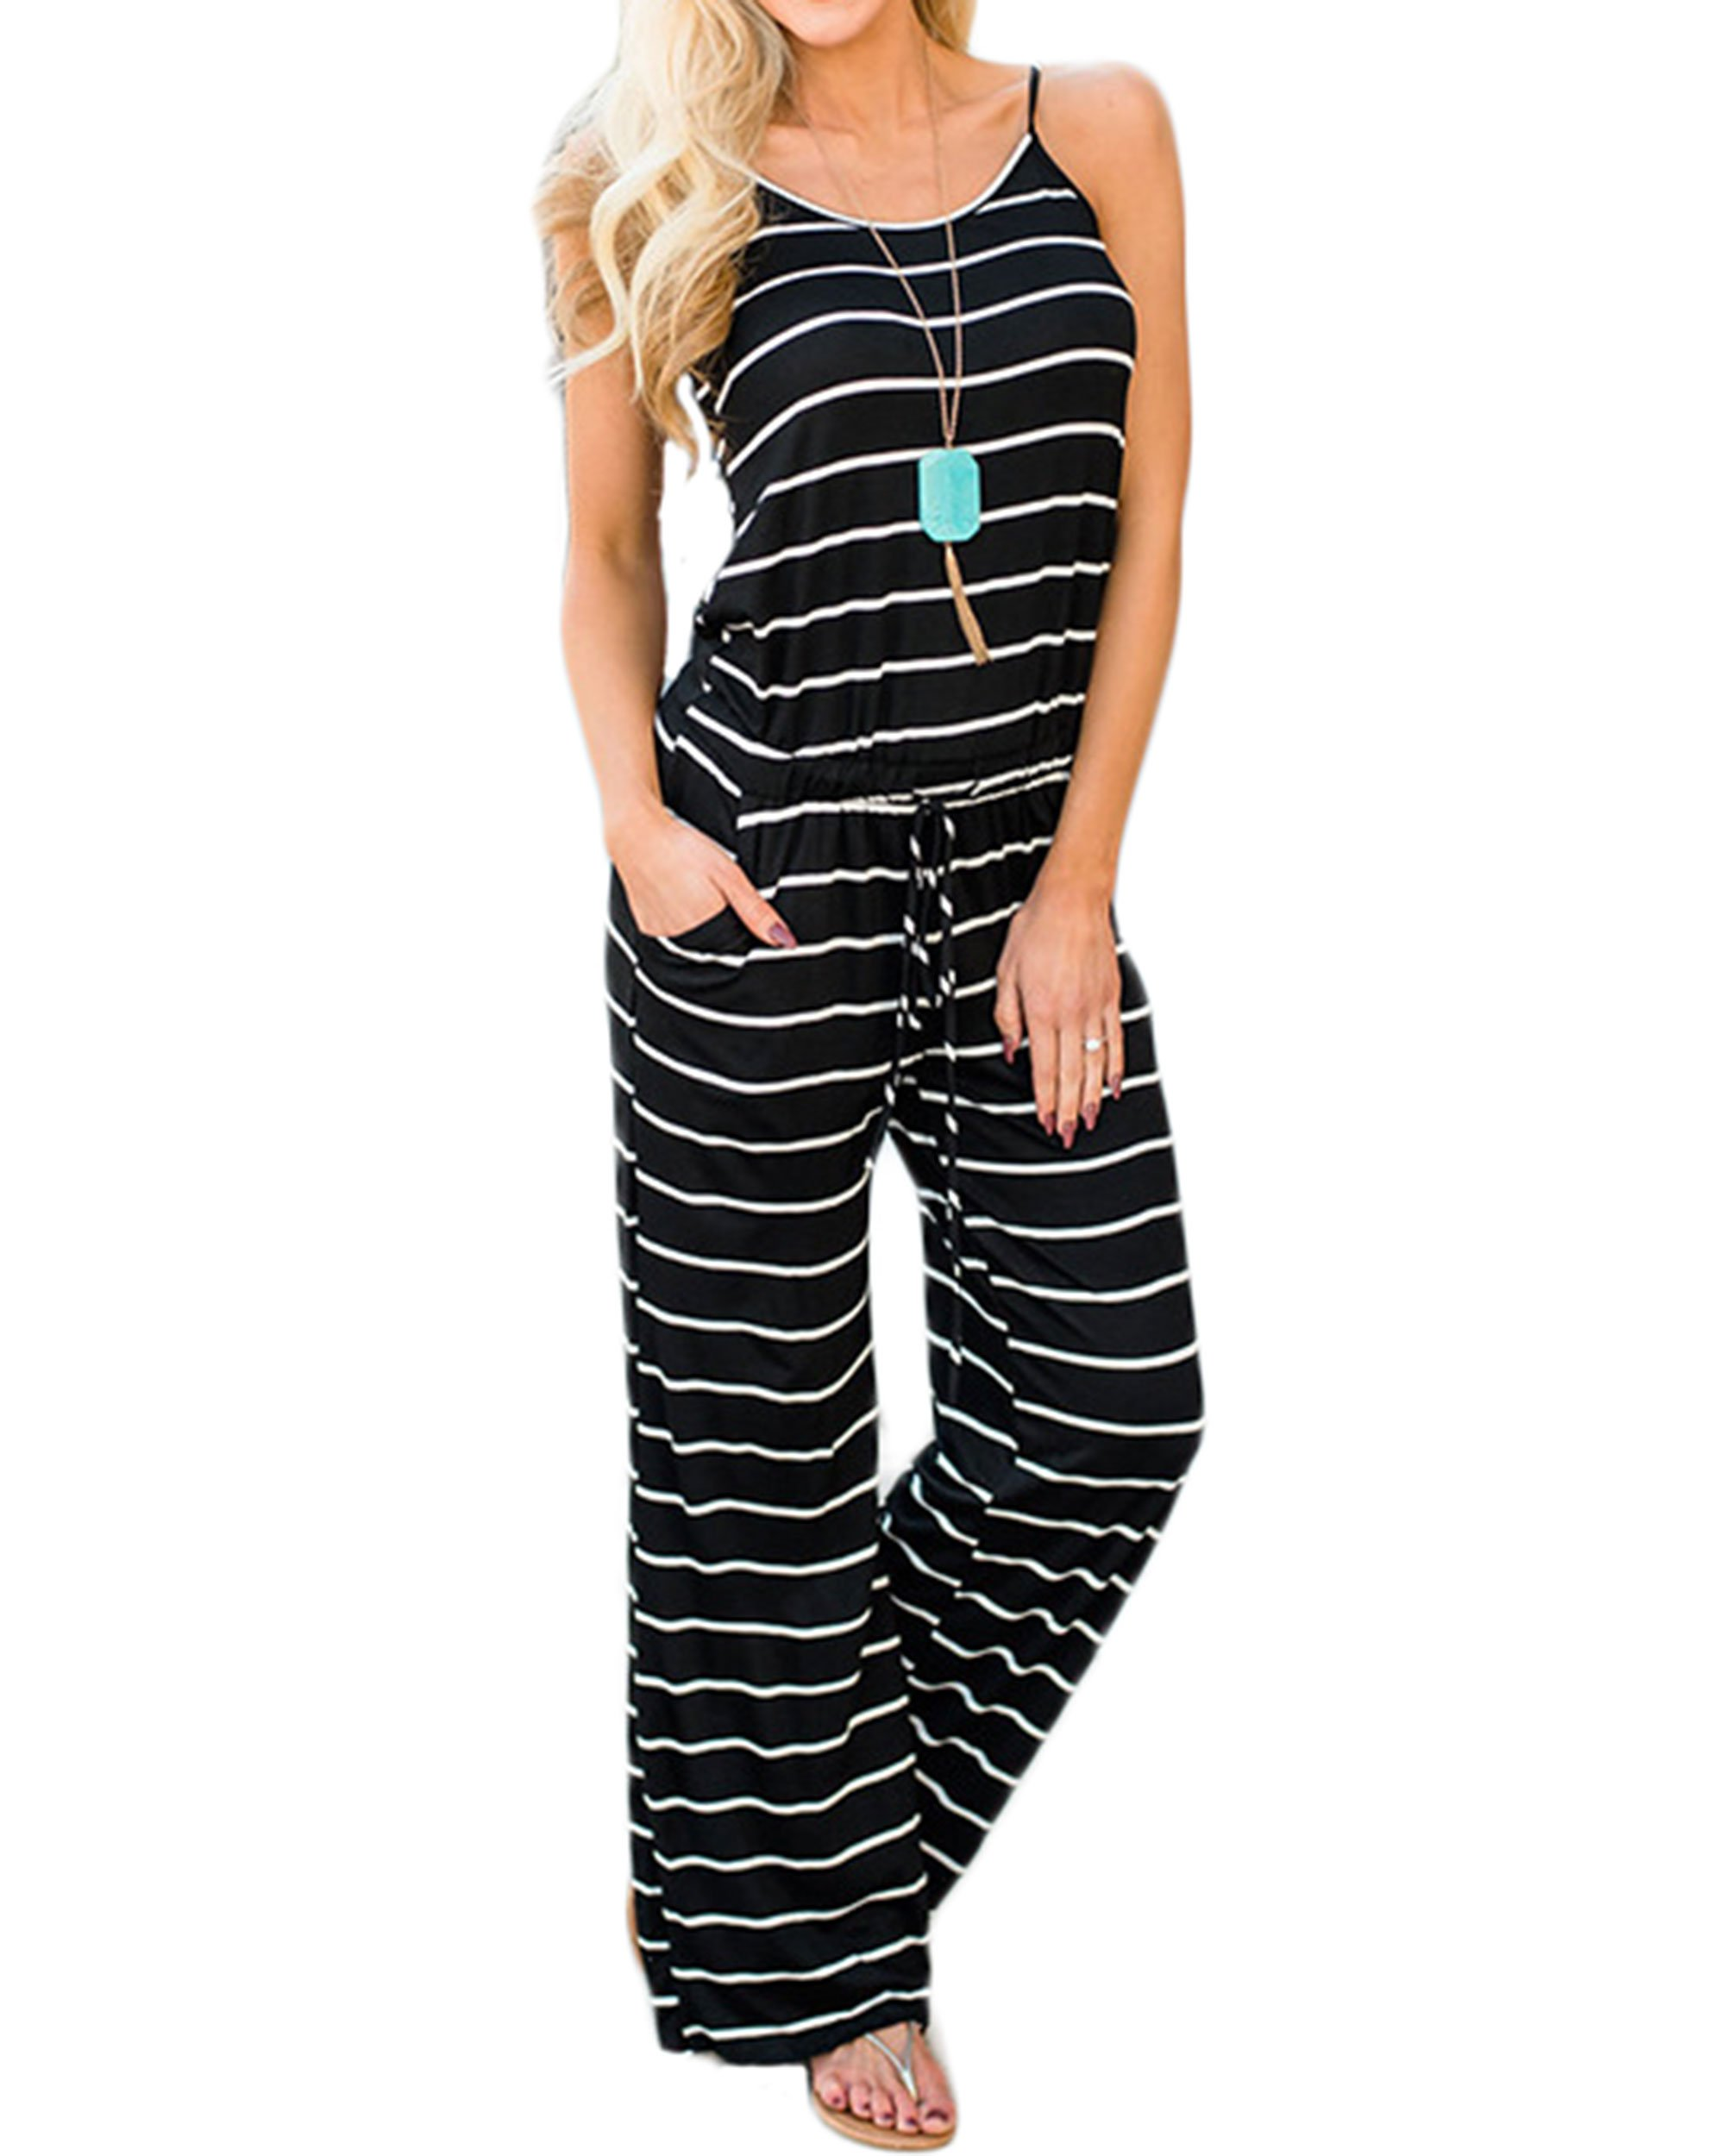 LUBERLIN Womens Flora Print Jumpsuits Halter Sleeveless Wide Long Pants Jumpsuit Rompers (Black Striped, XL)